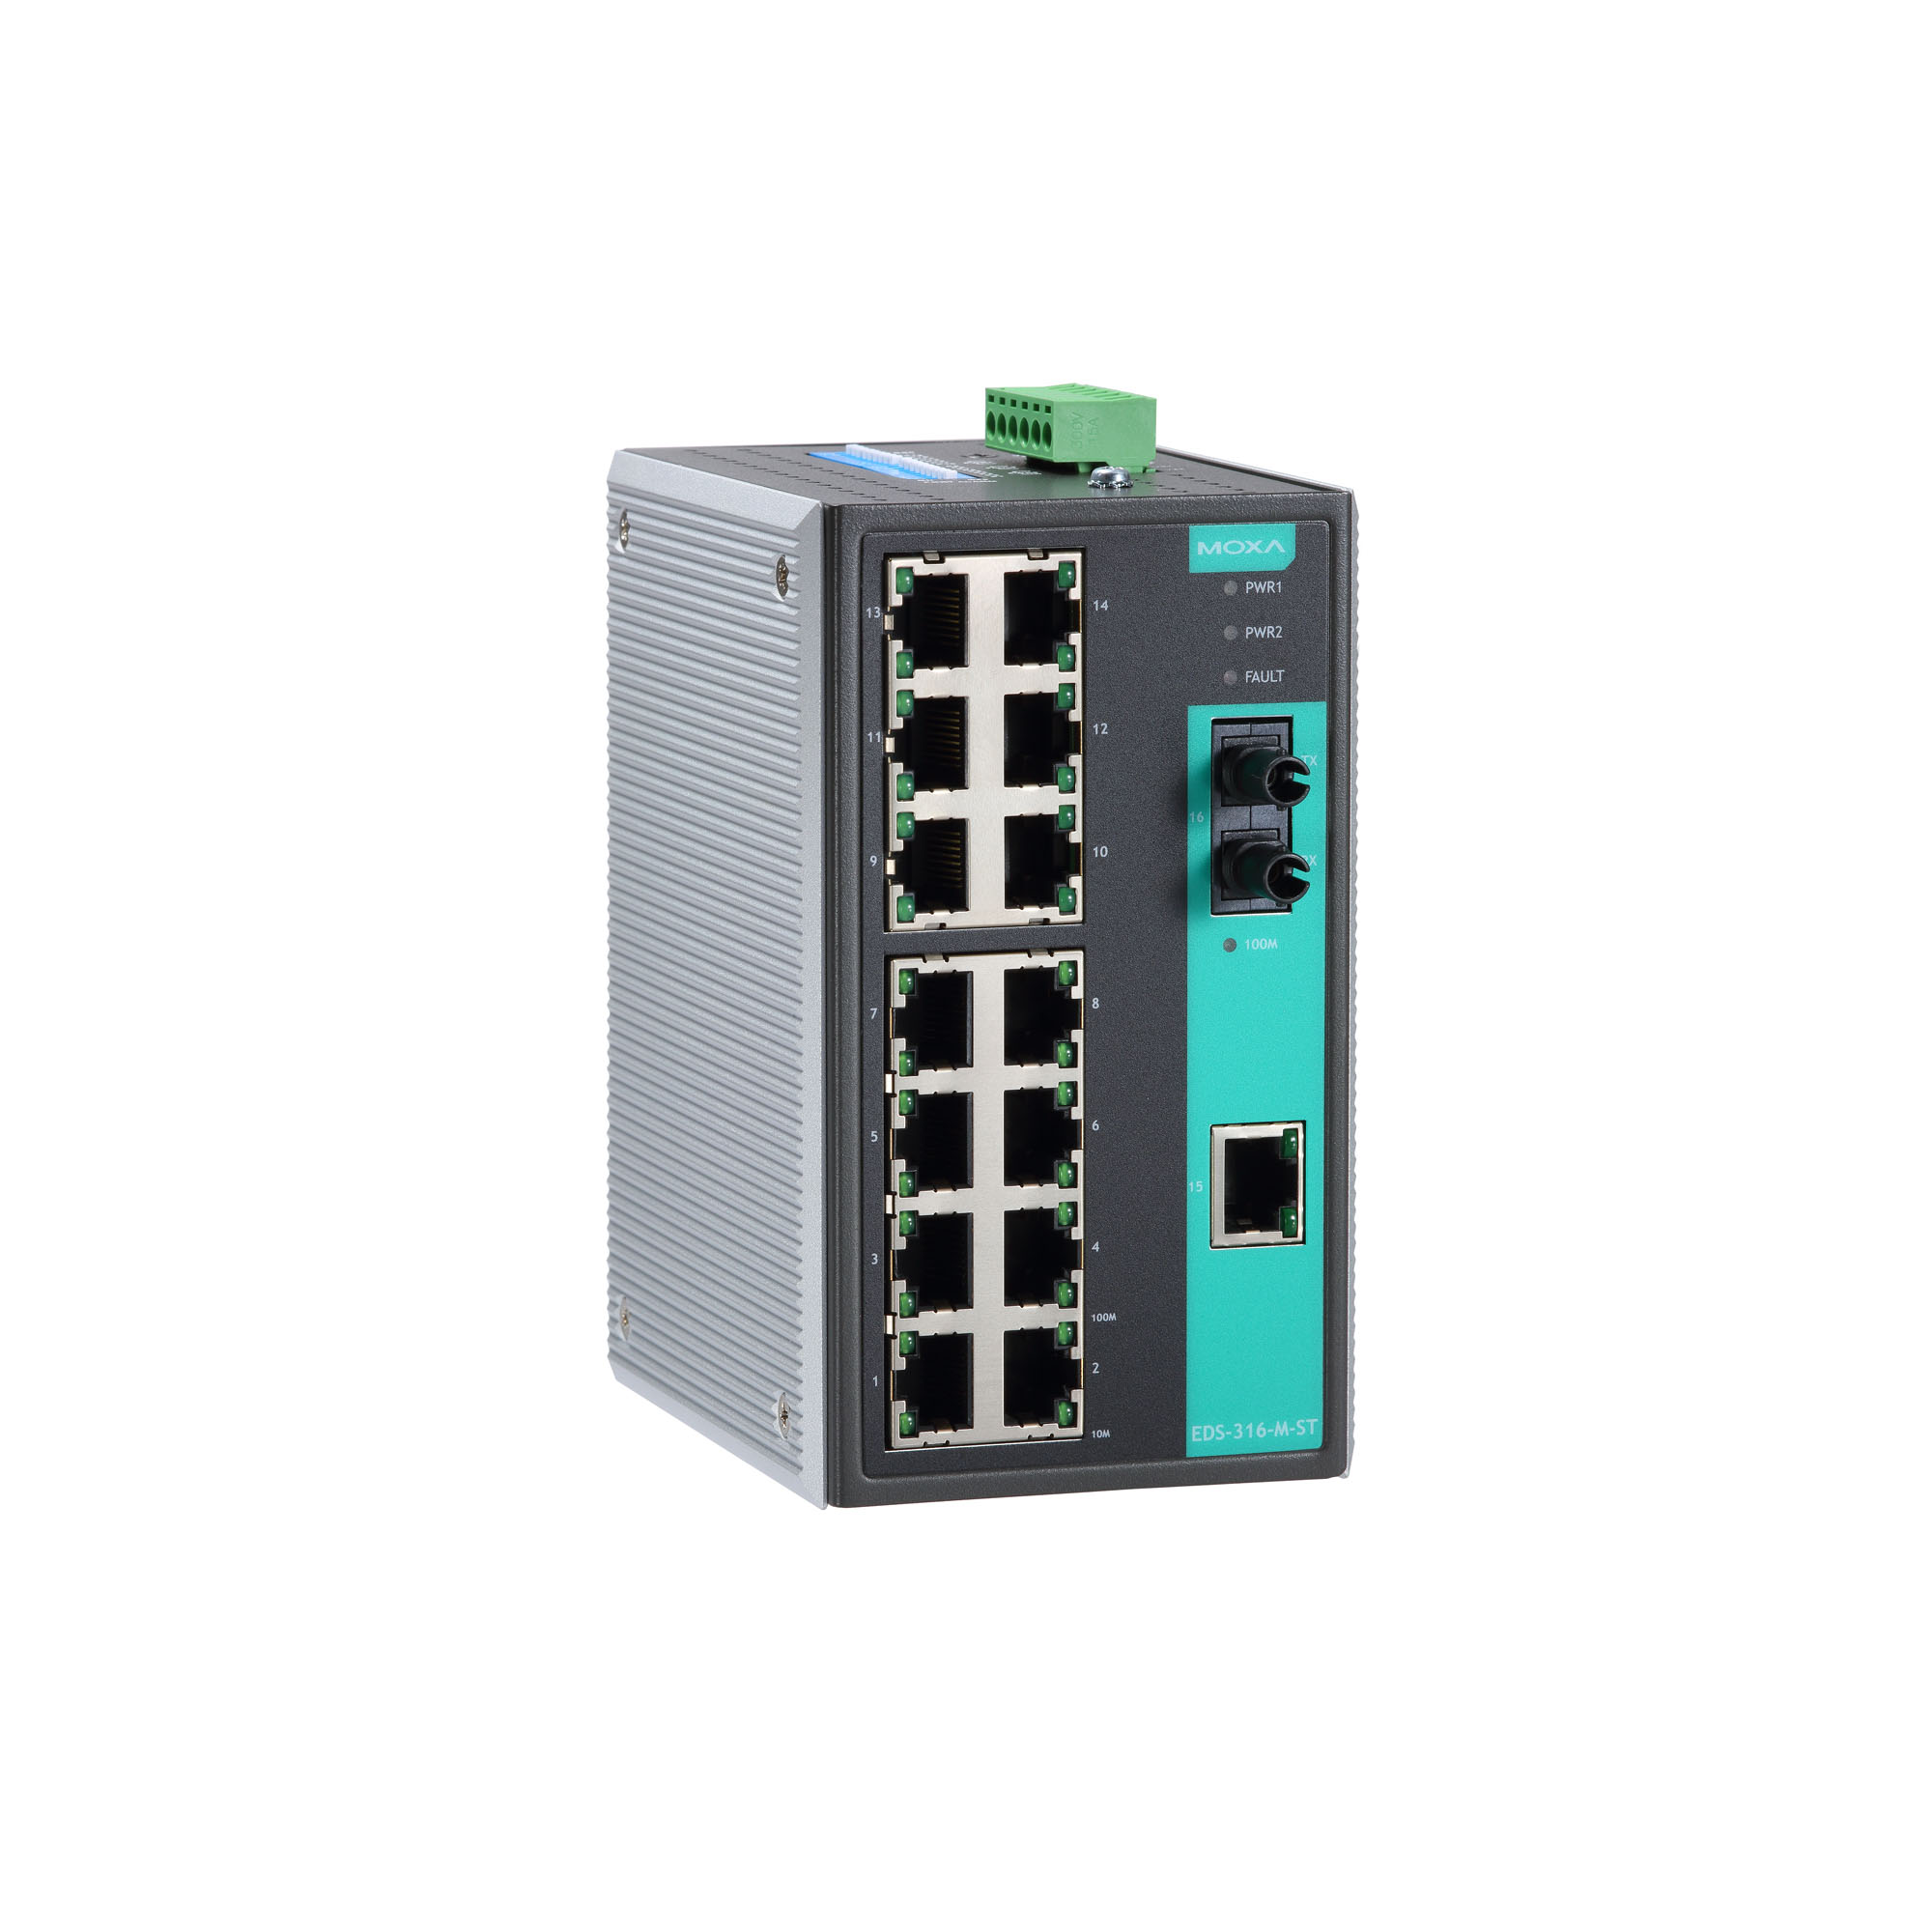 Moxa Switch Eds 316 Series Unmanaged Switches Moxa